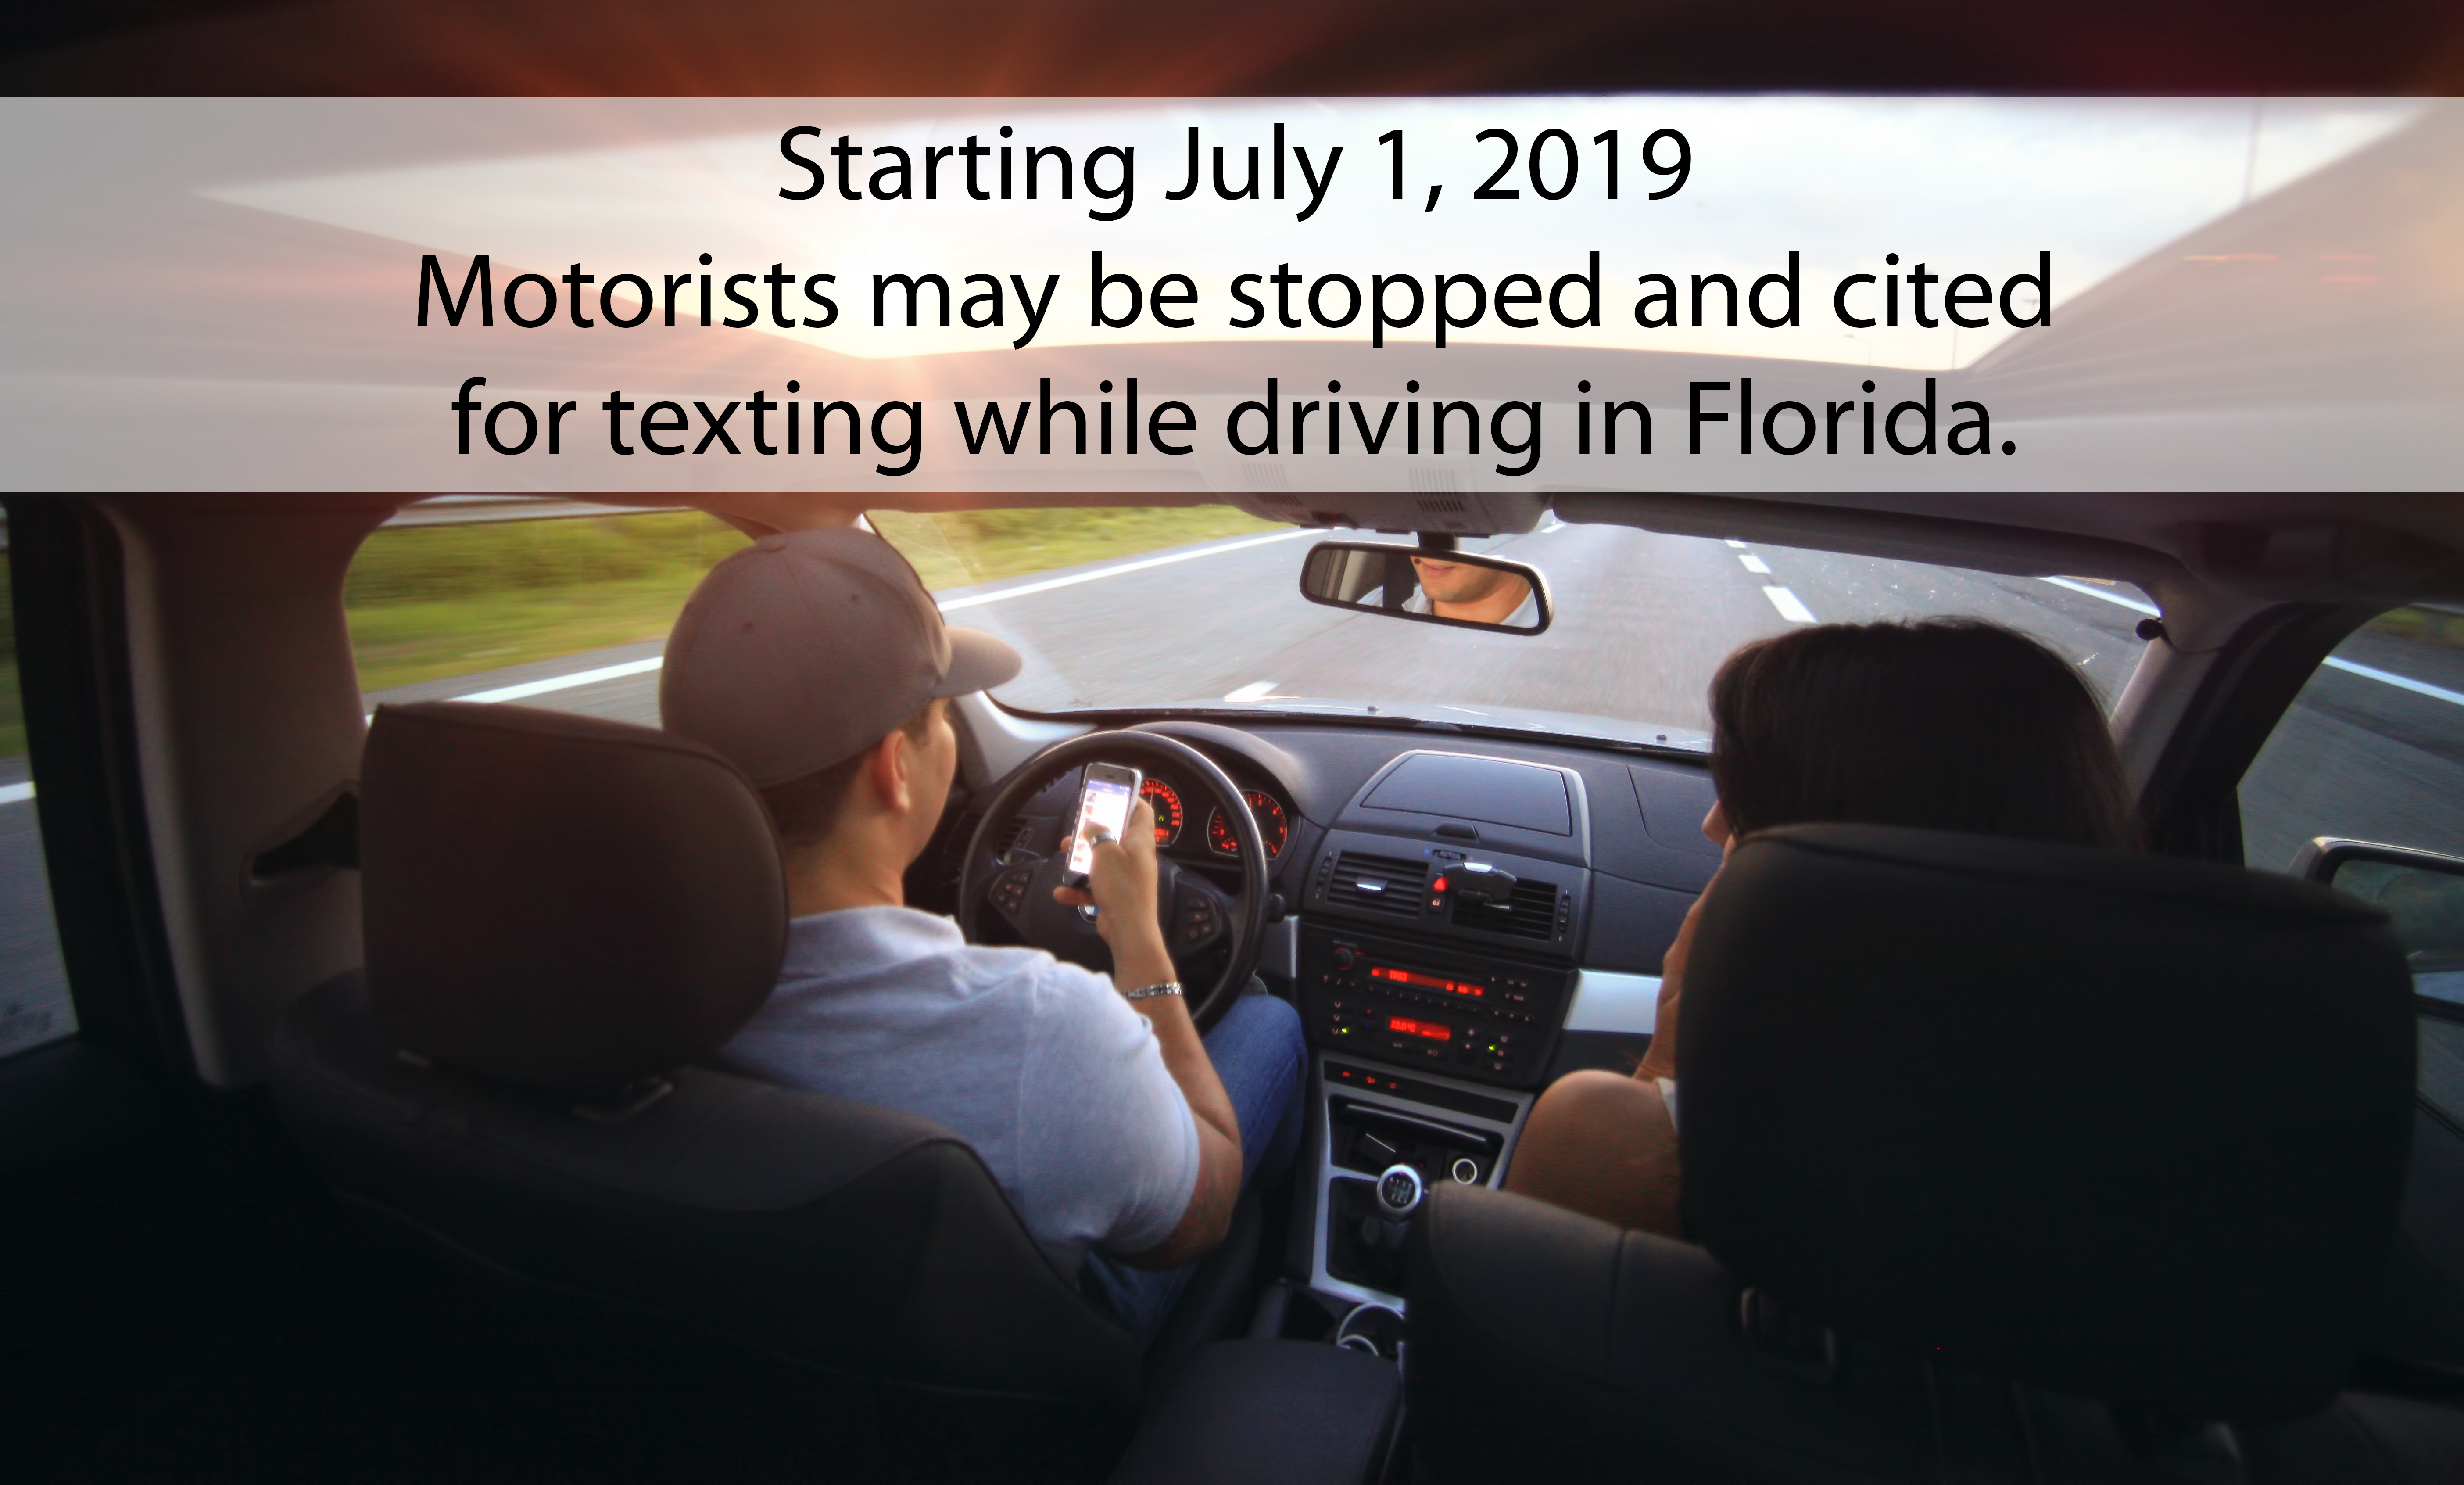 texting and driving, citrus gazette, texting